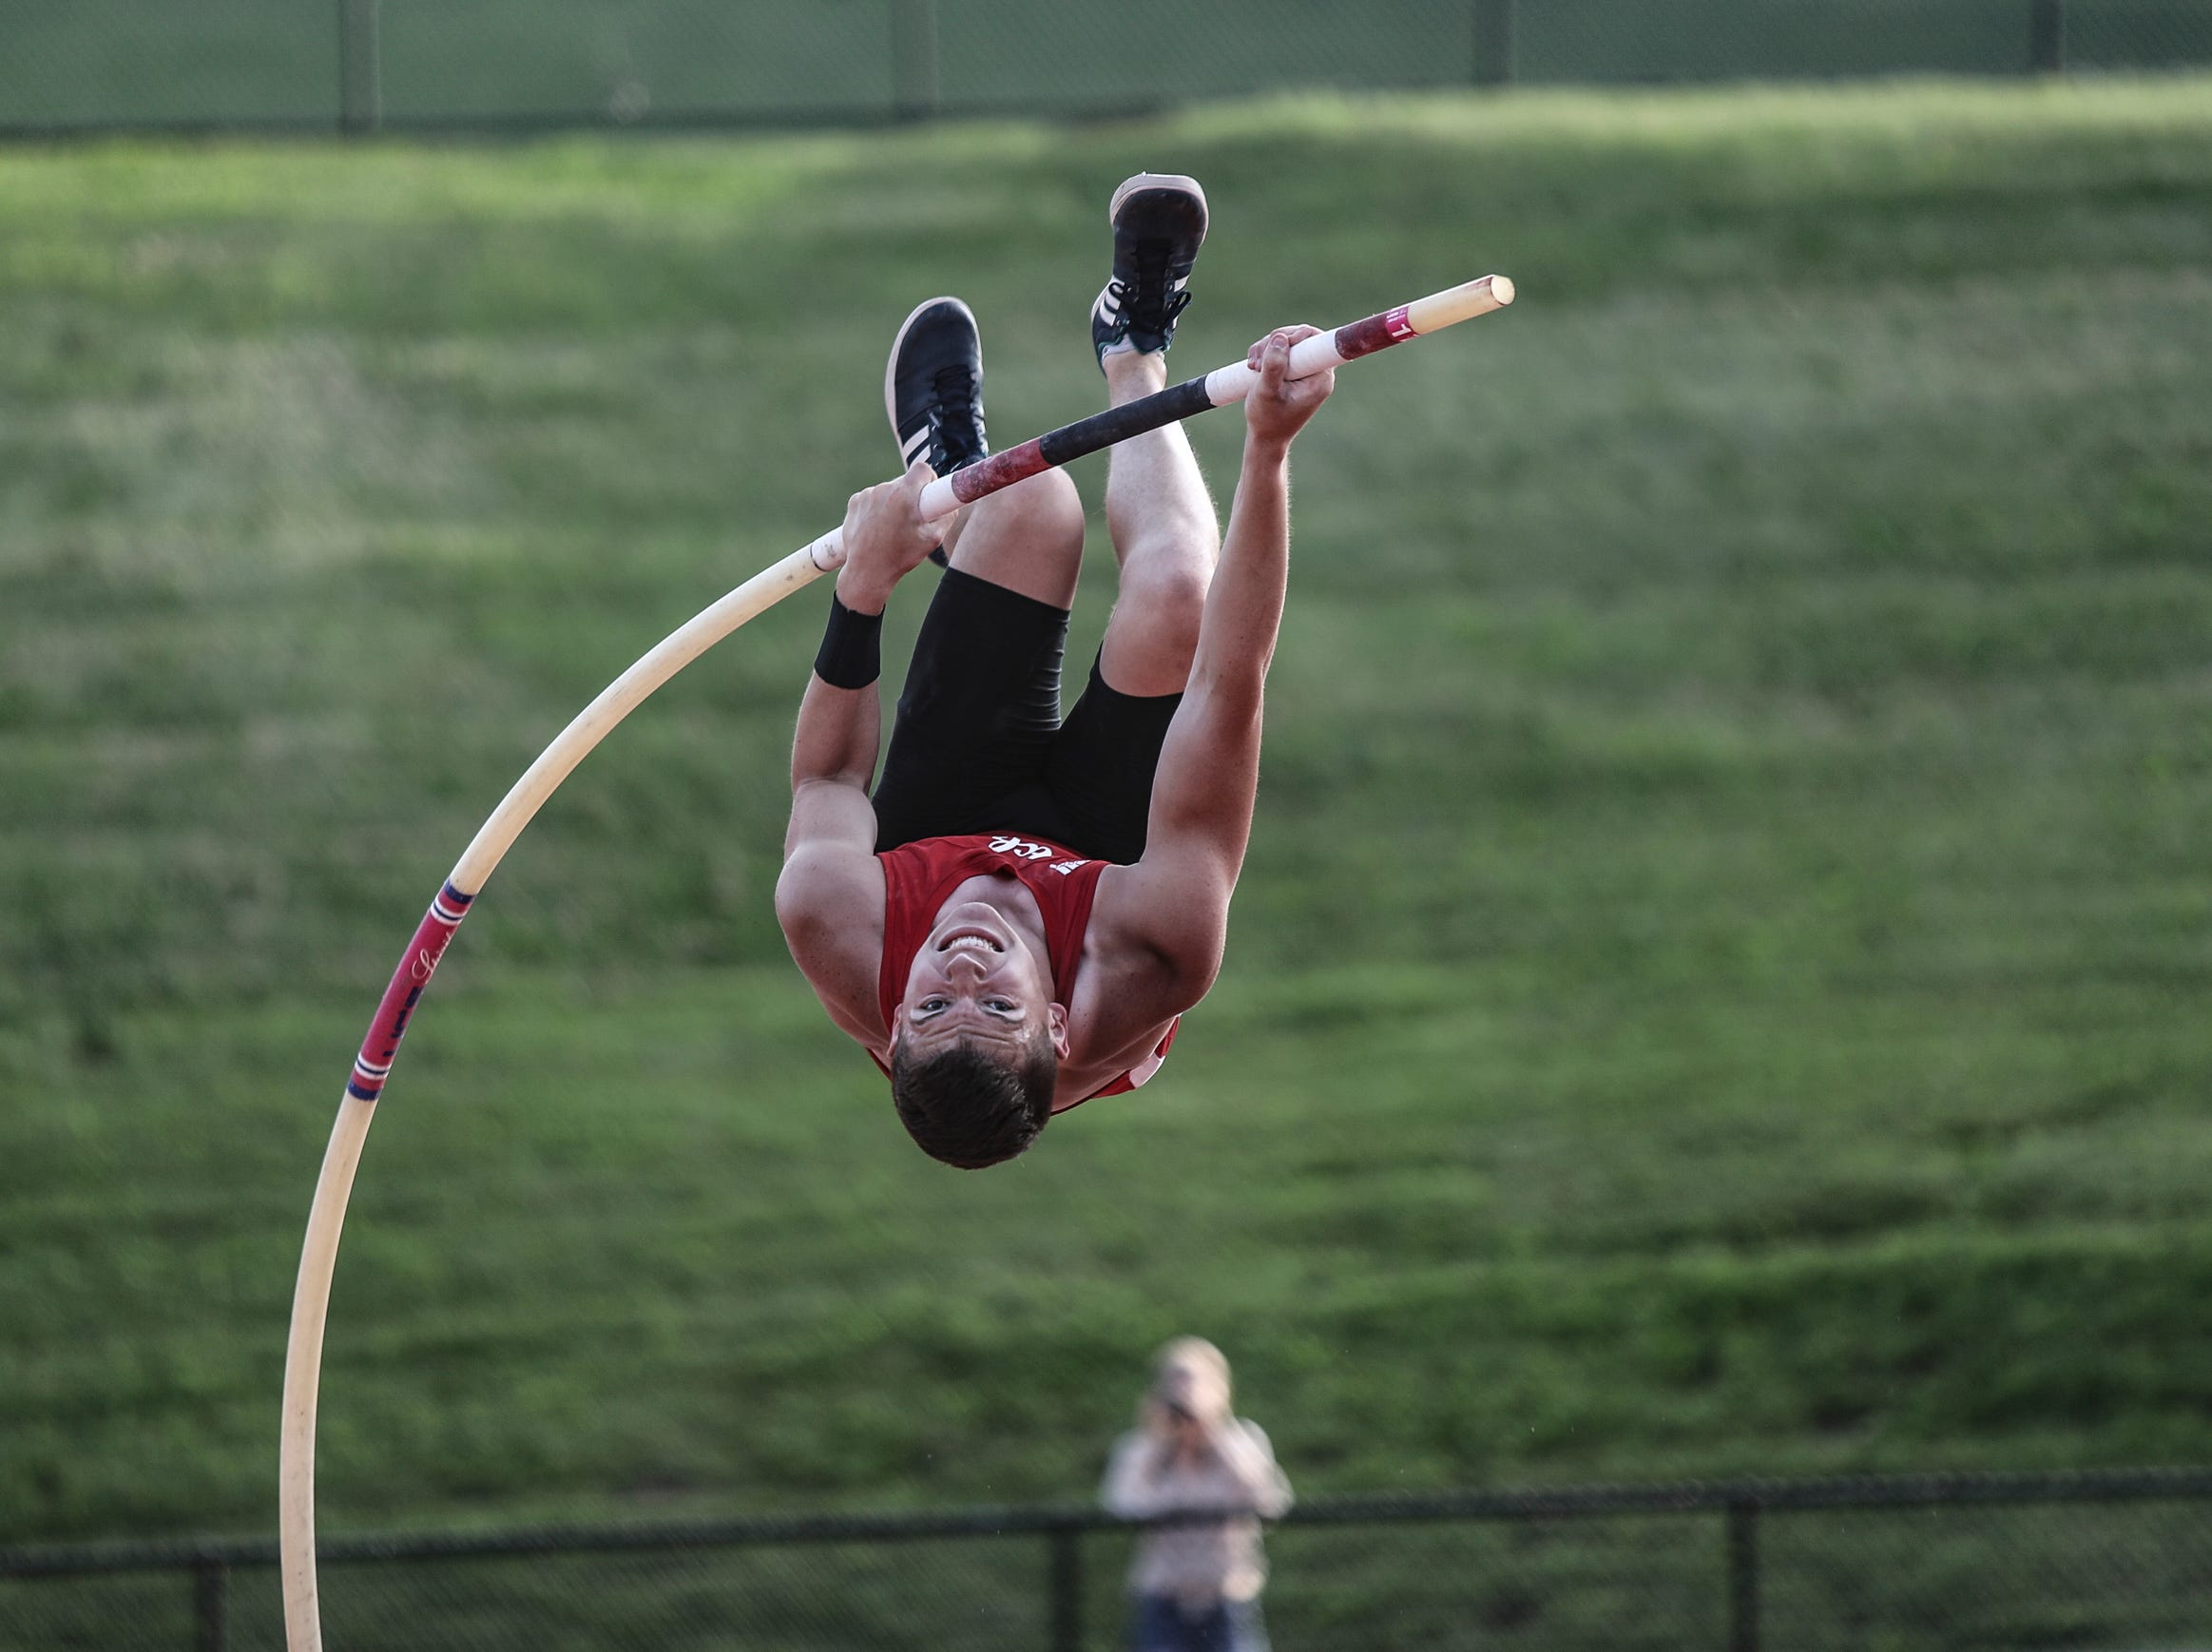 RC Ketcham's Jacob Baker attempts 14' in the pole-vault during the Section 1 state qualifier track & field meet at White Plains High School in White Plains on Friday, June 1, 2018.